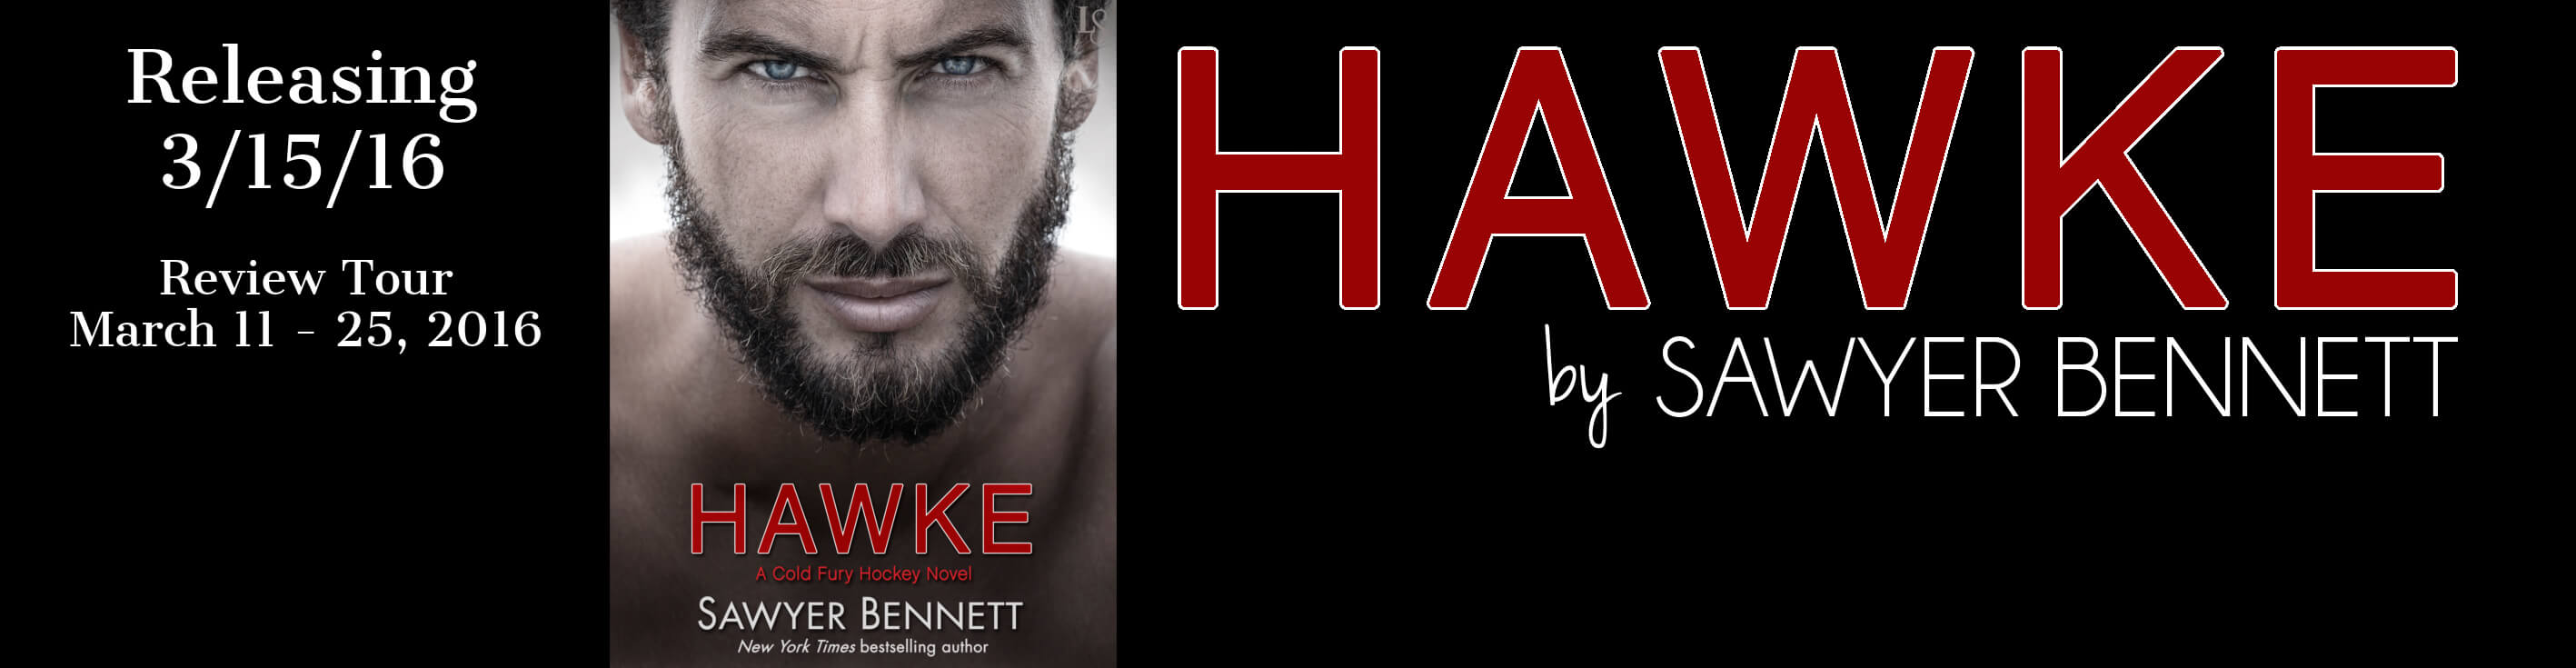 New Release by Sawyer Bennett ~ HAWKE REVIEW